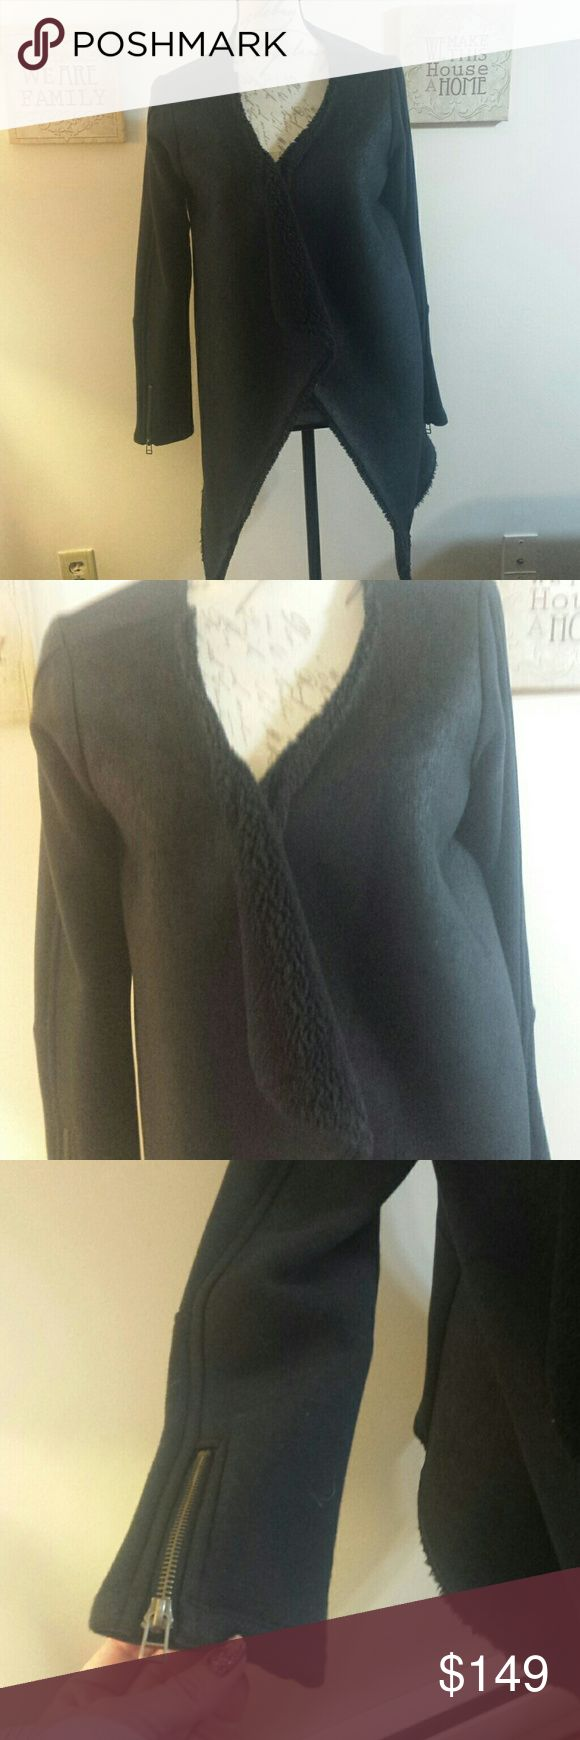 Brand new velvet by graham& spencer Great jacket pic dont do this justice you will love this ...... never worn ... great steal  can't fit large too Velvet by Graham & Spencer Jackets & Coats